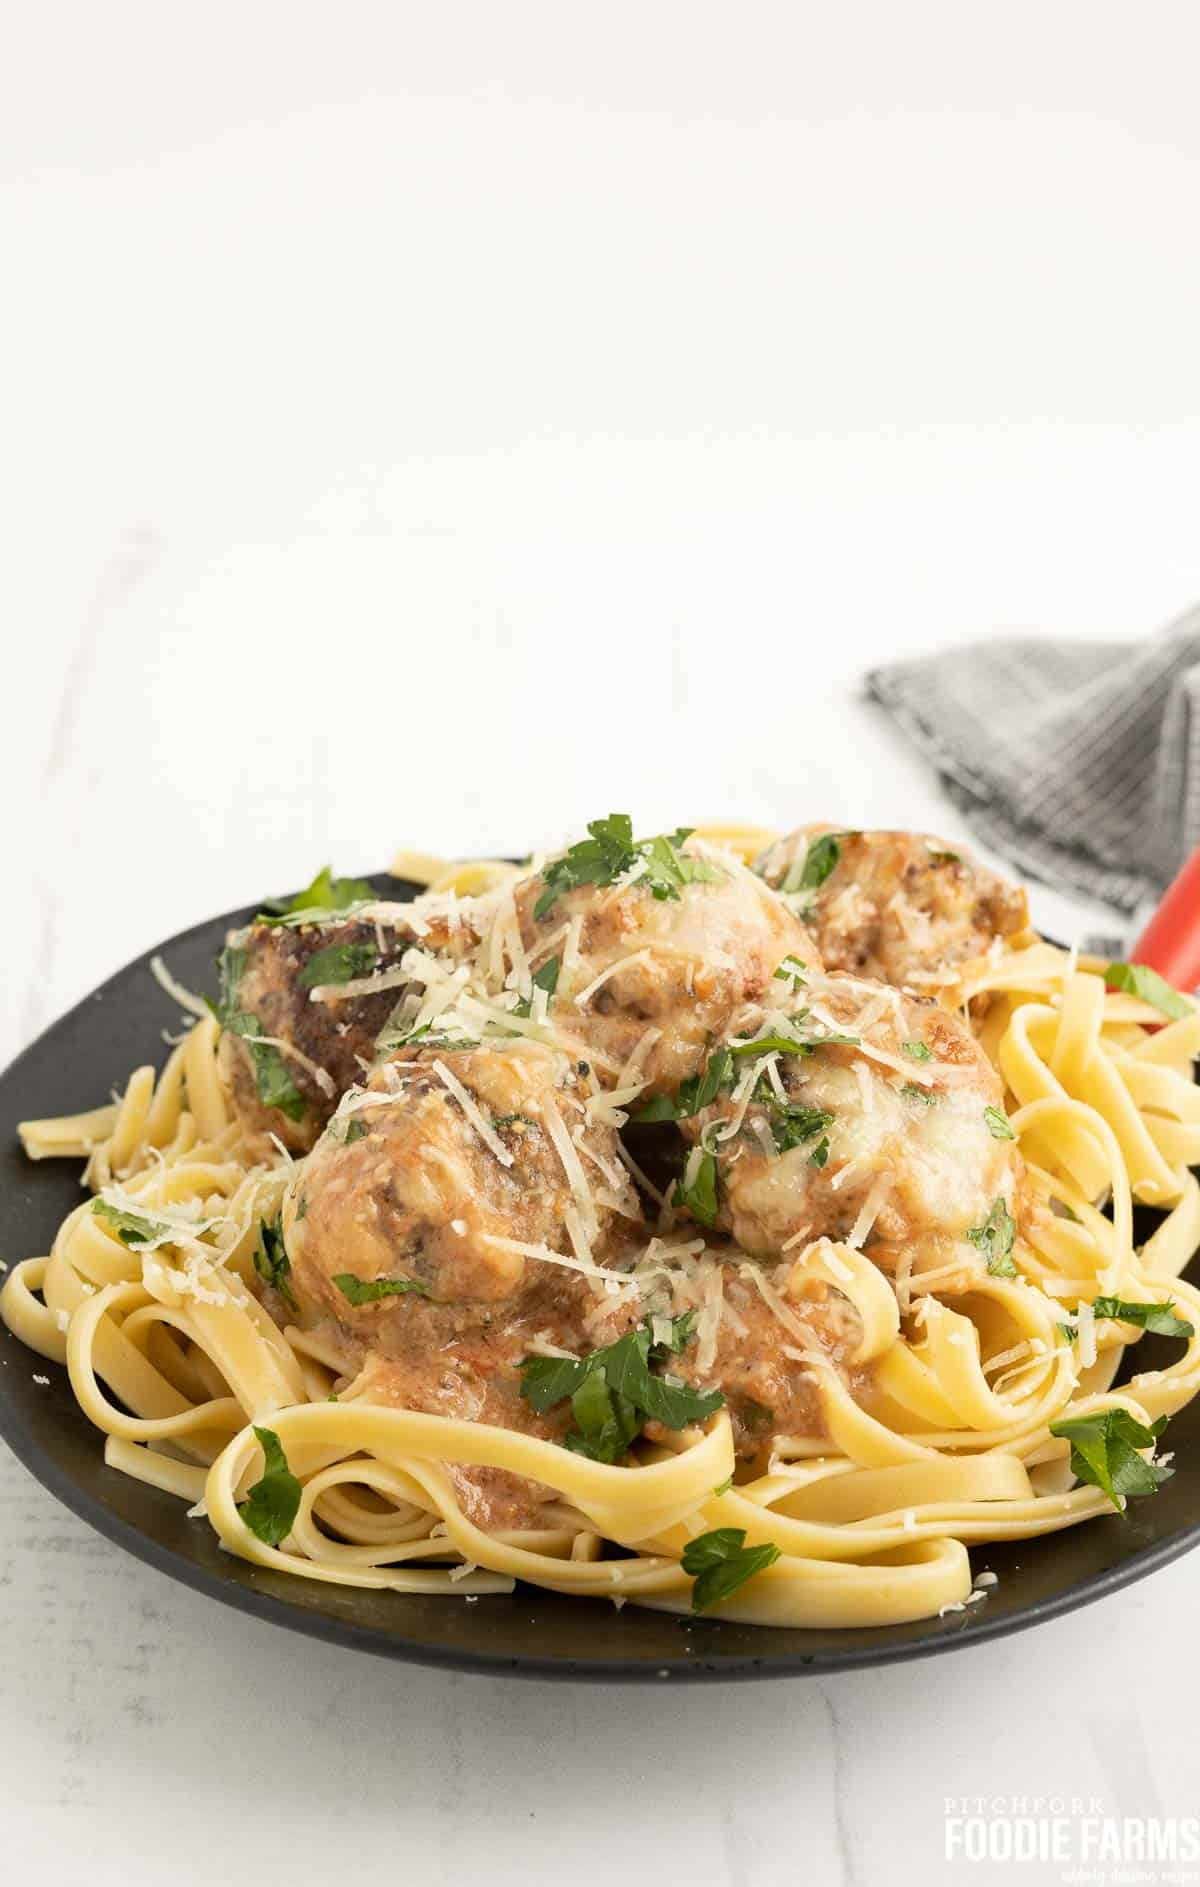 A black plate with zucchini meatballs on top of pasta with fresh herbs.